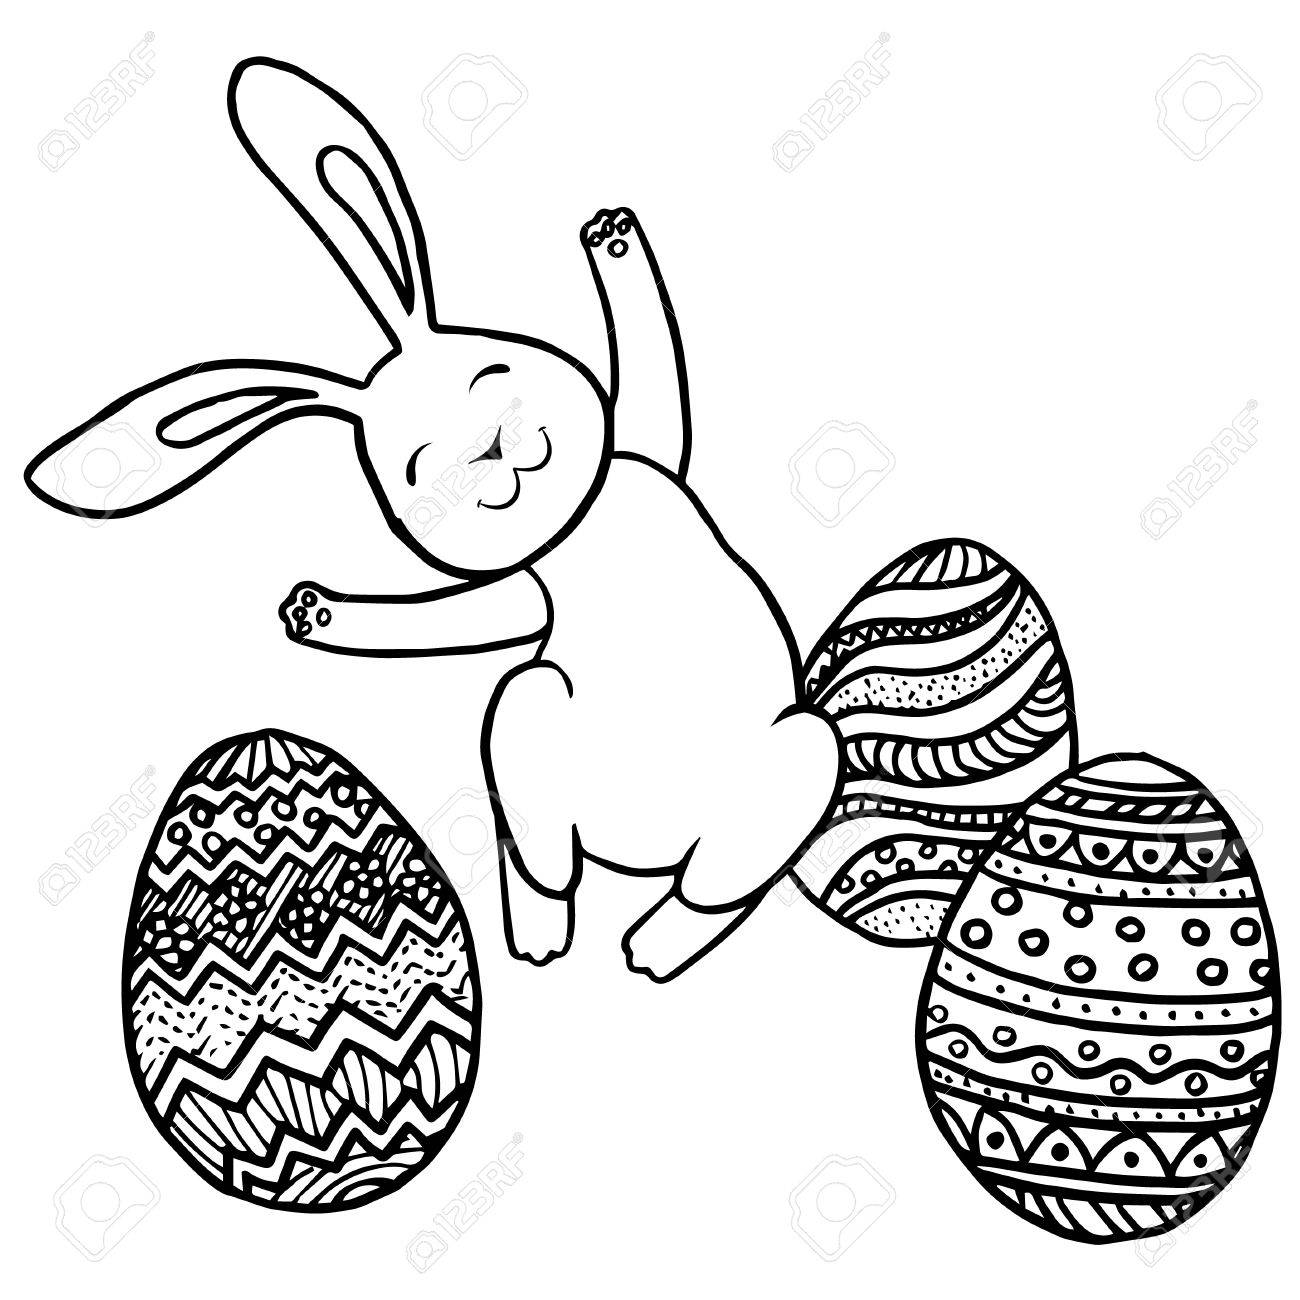 Jumping Easter Bunny And Eggs Pattern For Adult Coloring Book Hand Drawn Design With